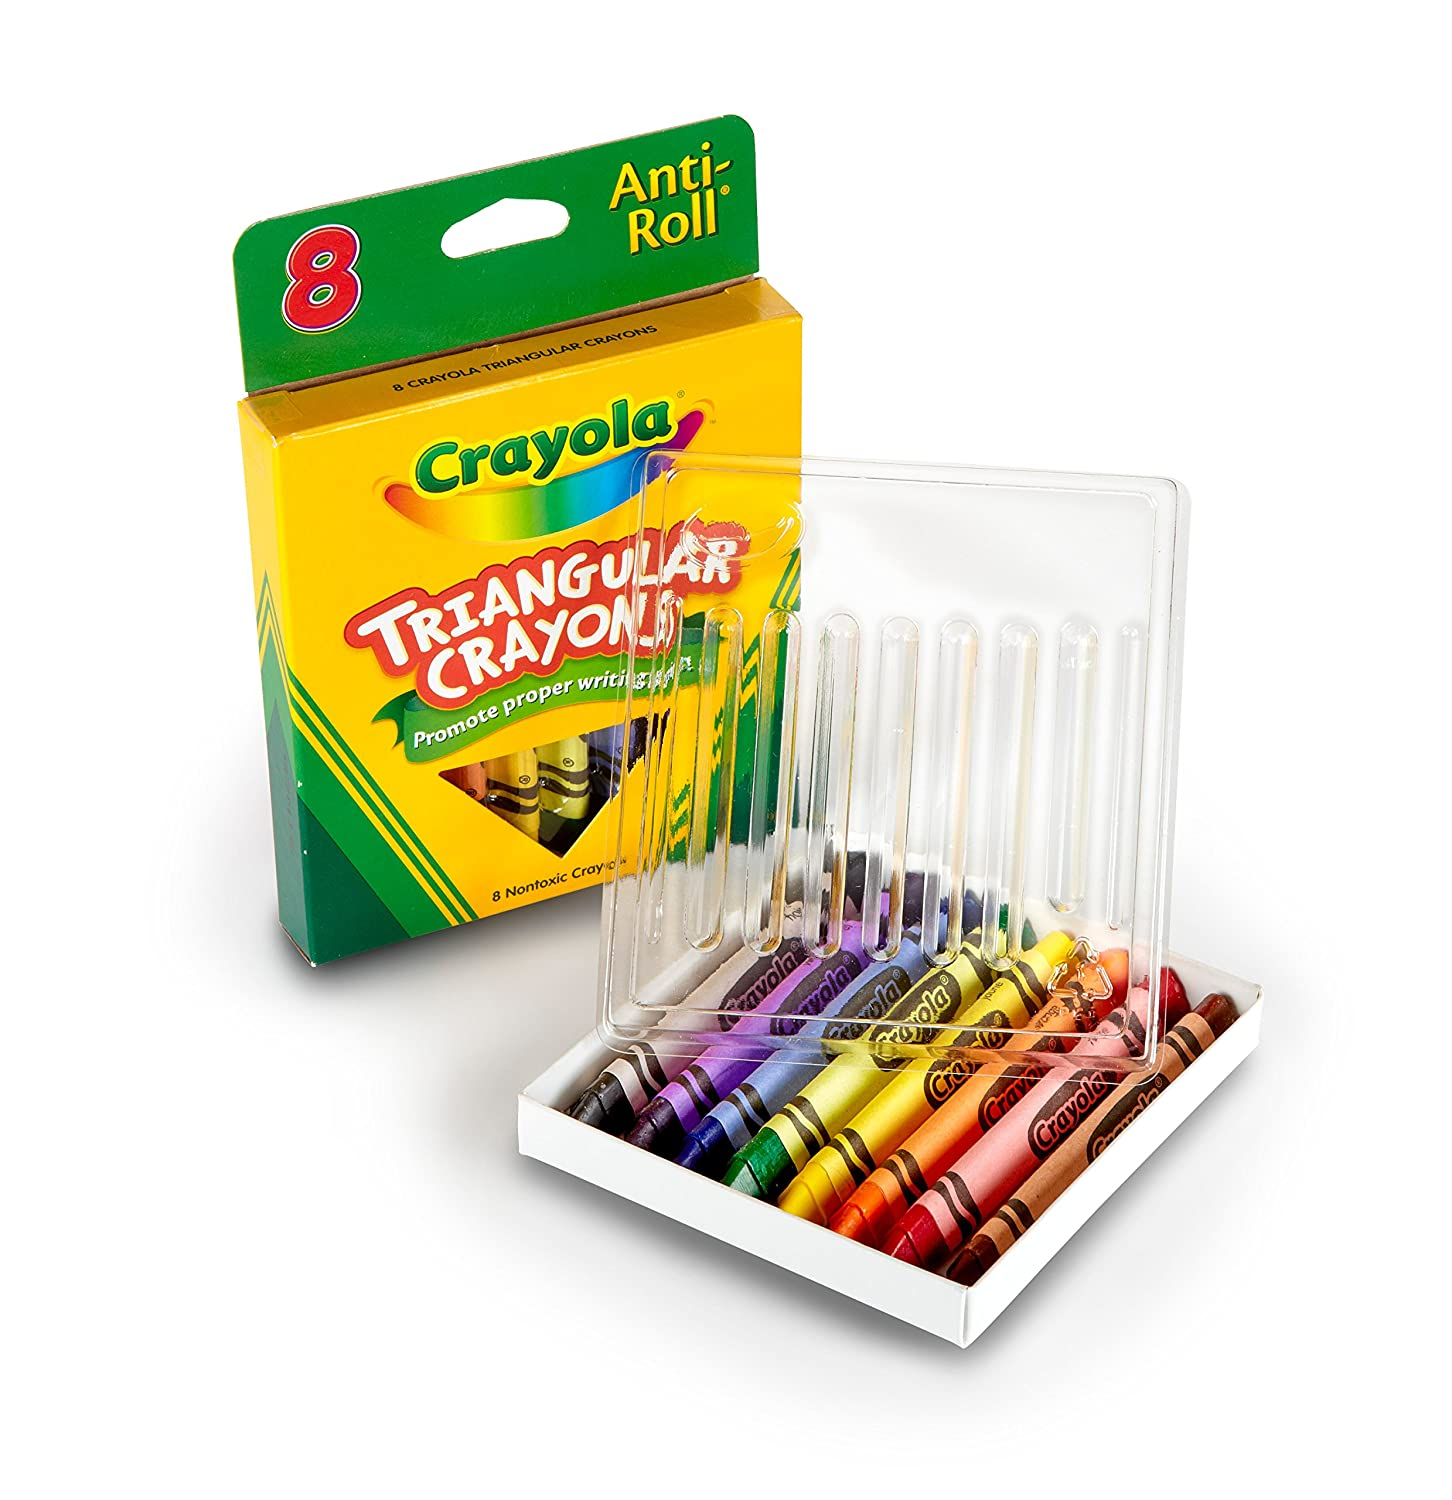 Amazon.com: Crayola 8ct Triangular Crayons: Toys & Games